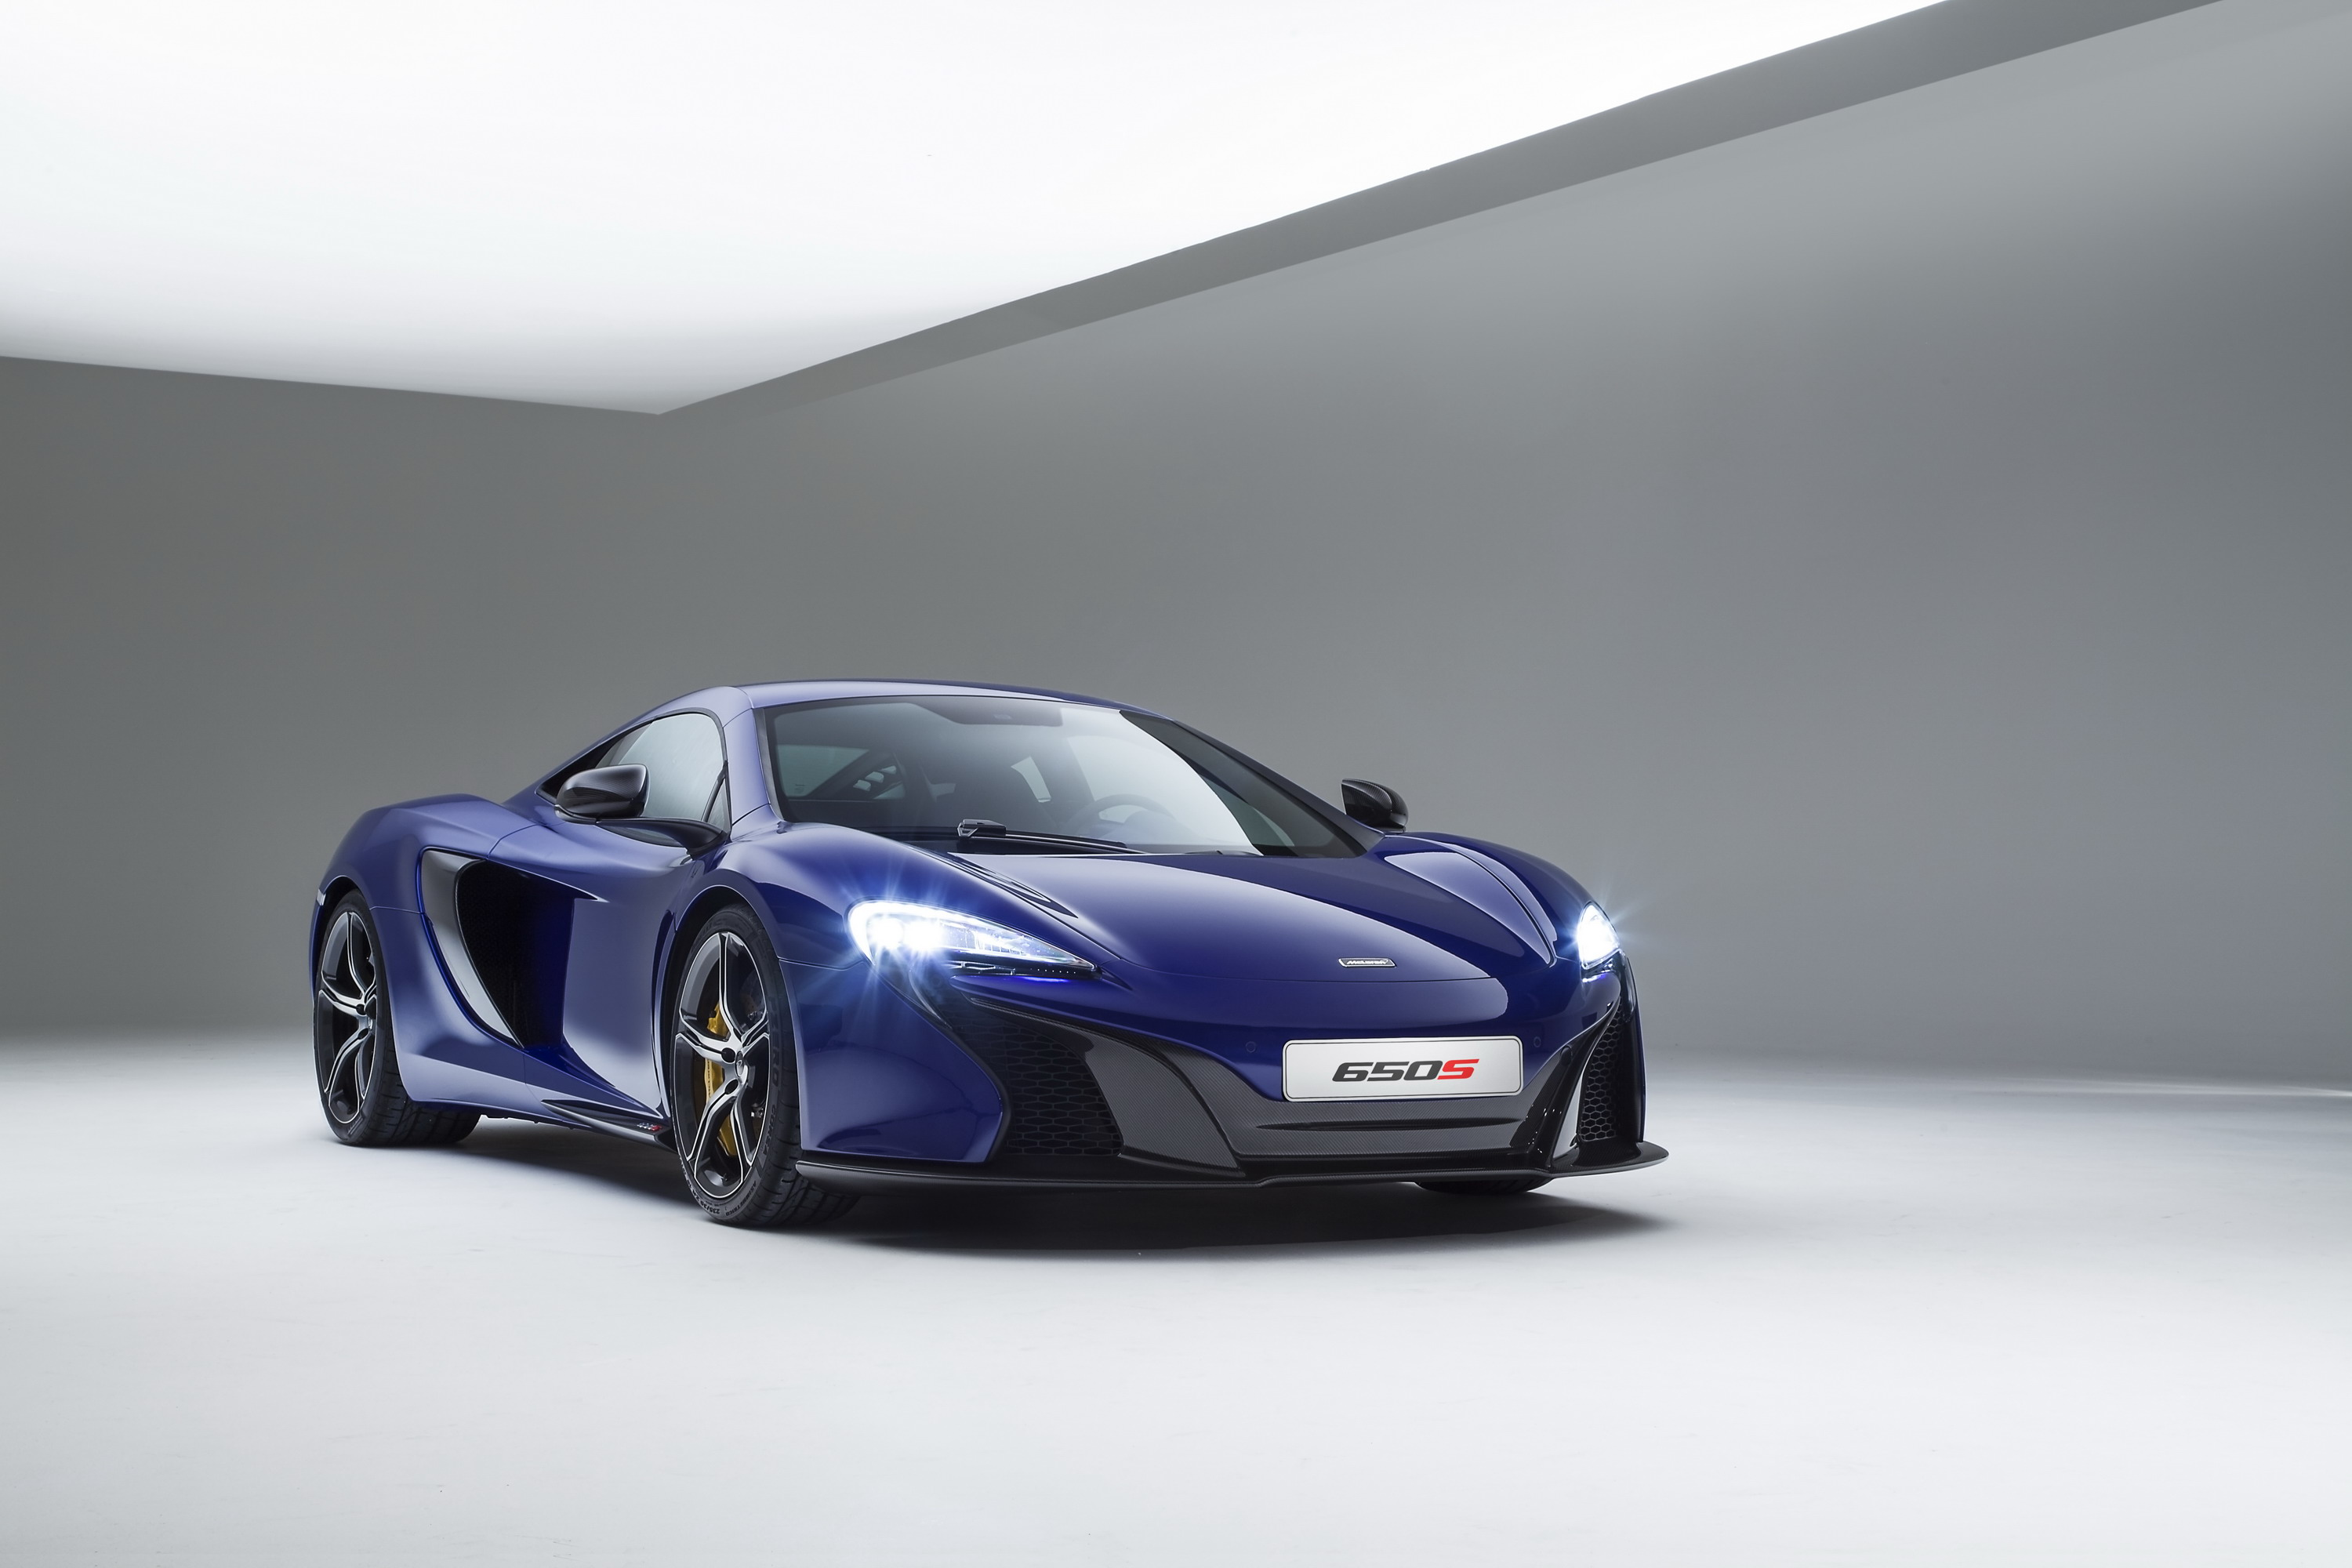 mclaren 650s reviews, specs, prices, photos and videos | top speed